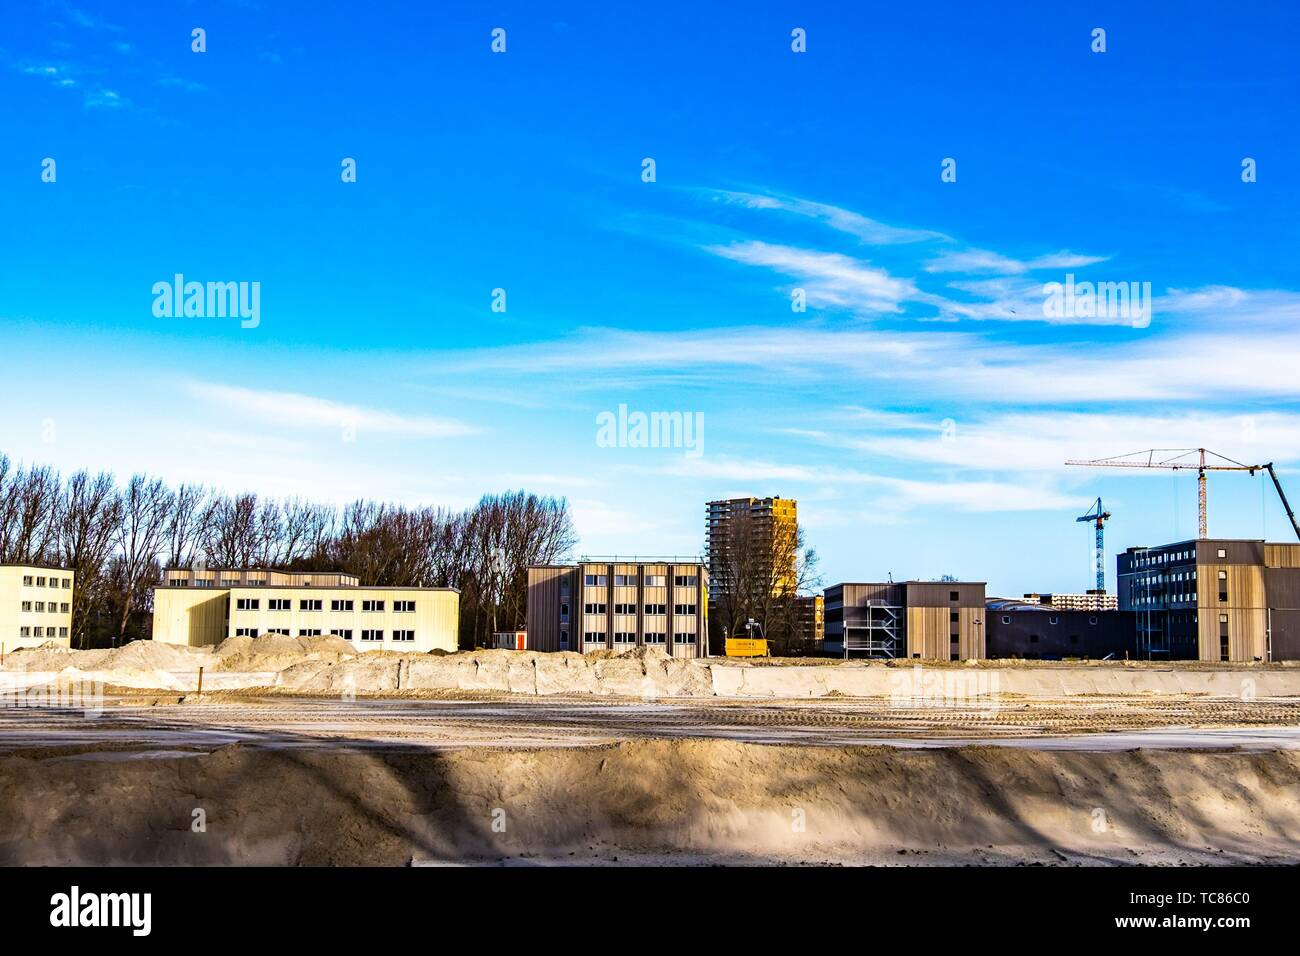 Construction site in Amsterdam North, The Netherlands, Europe. Stock Photo